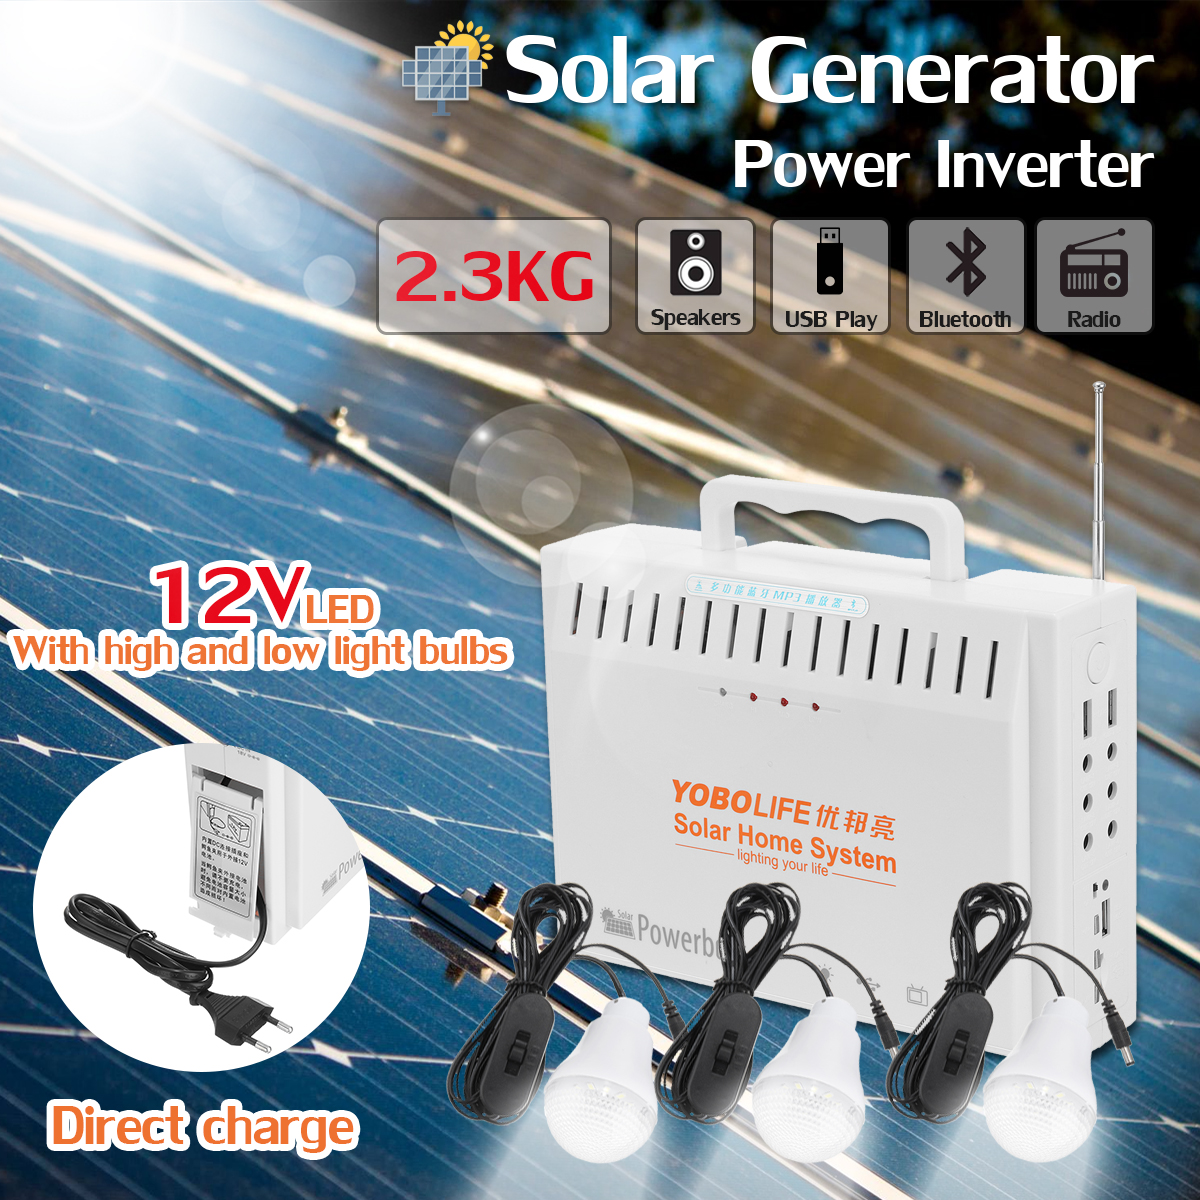 LM-9015 10W Portable Solar Generator Kit UPS Power Supply 2 USB Ports LED Bulbs Solar Powered System